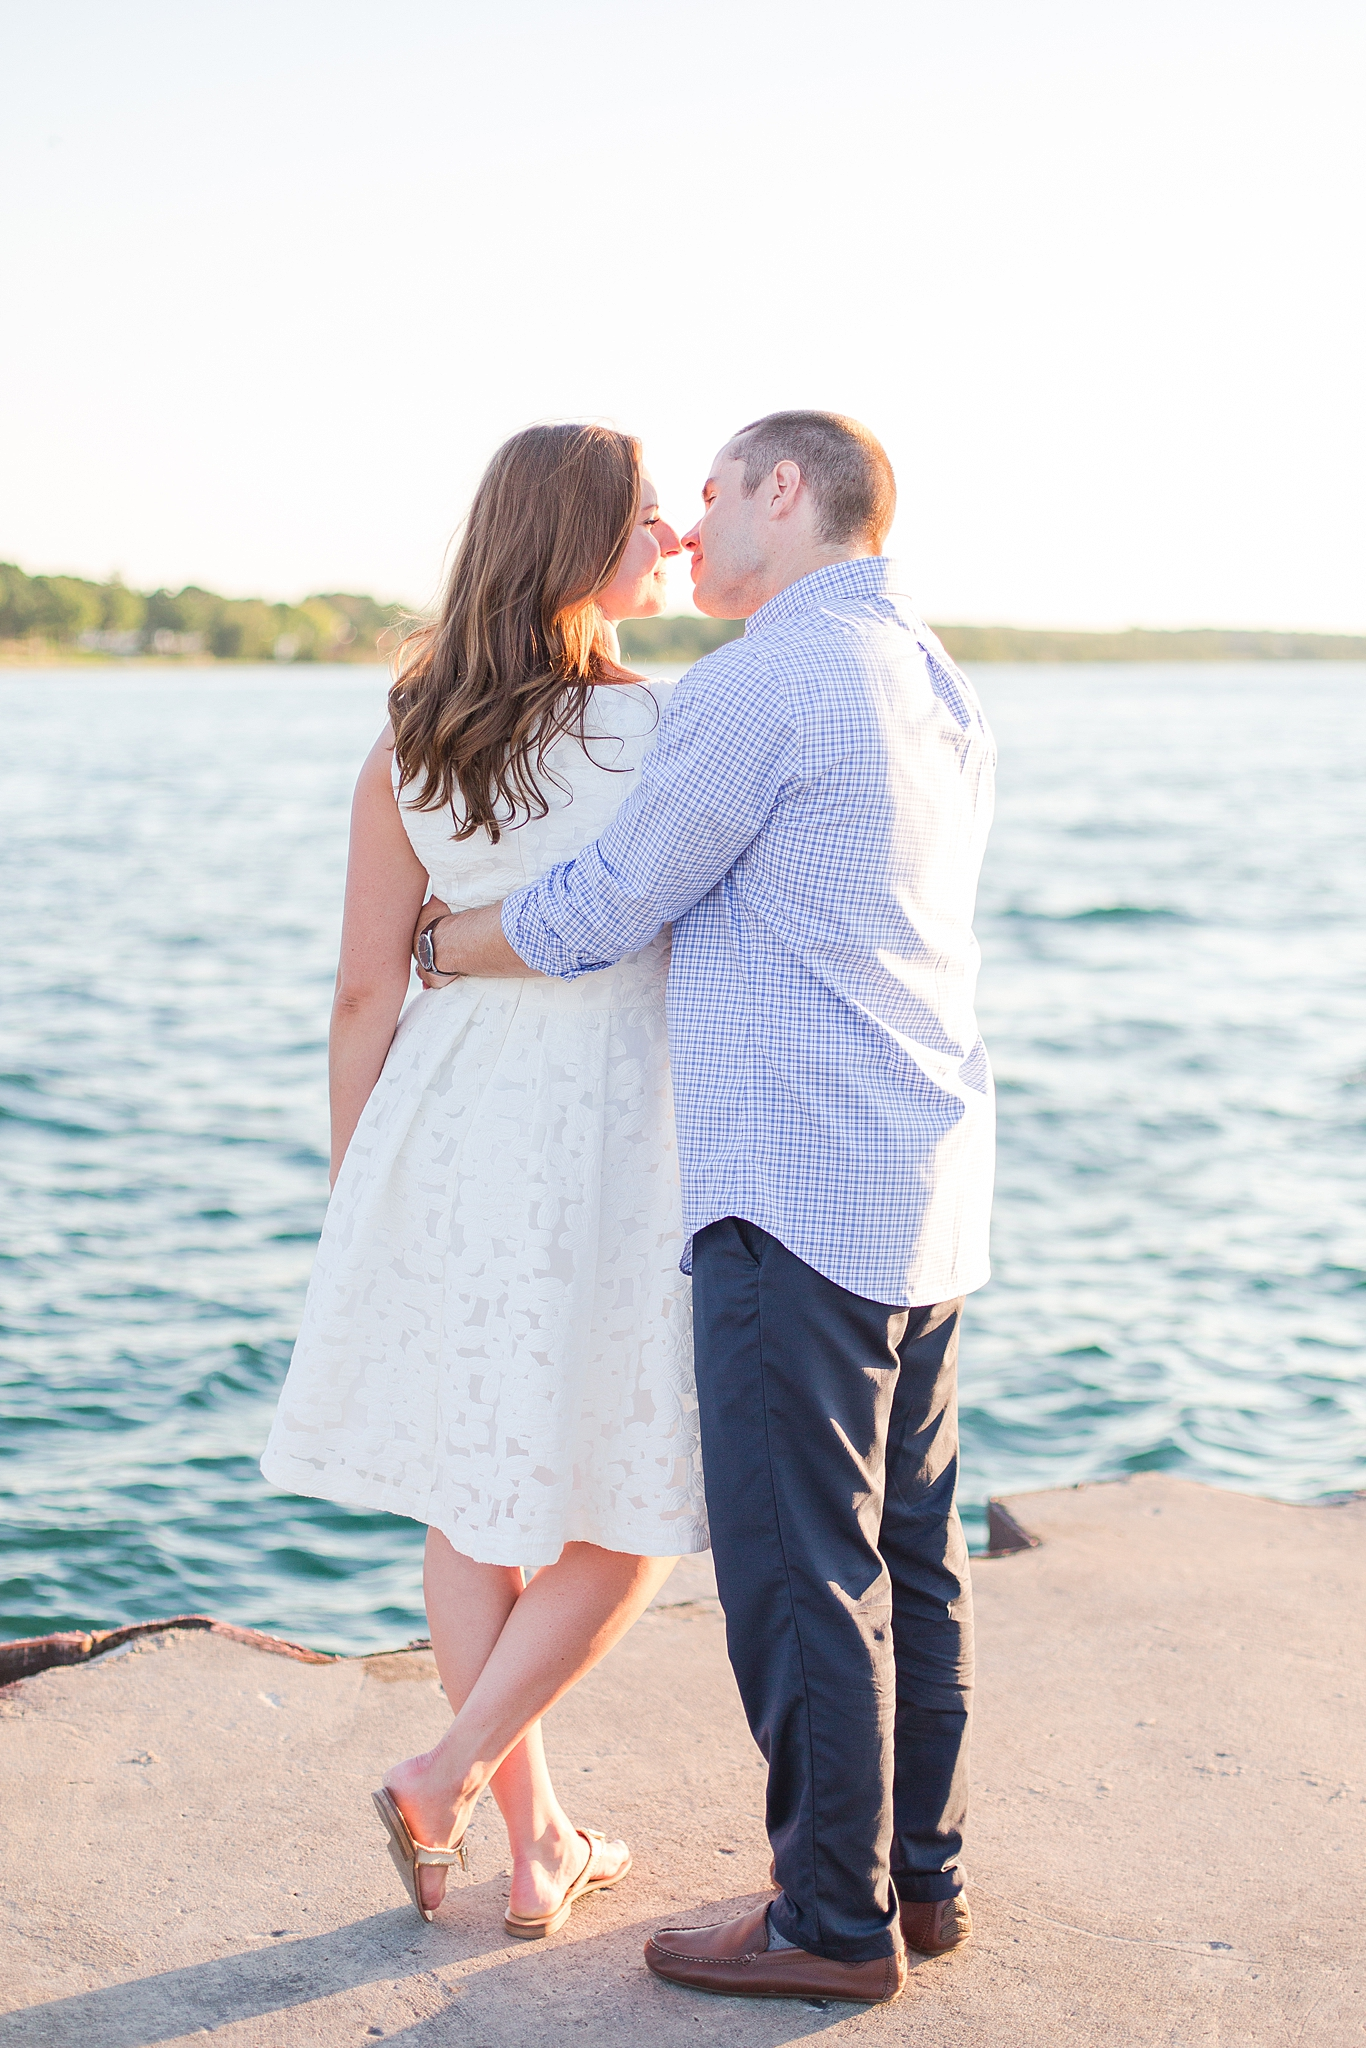 waterfront-lighthouse-engagement-photography-in-charlevoix-mi-by-courtney-carolyn-photography_0005.jpg